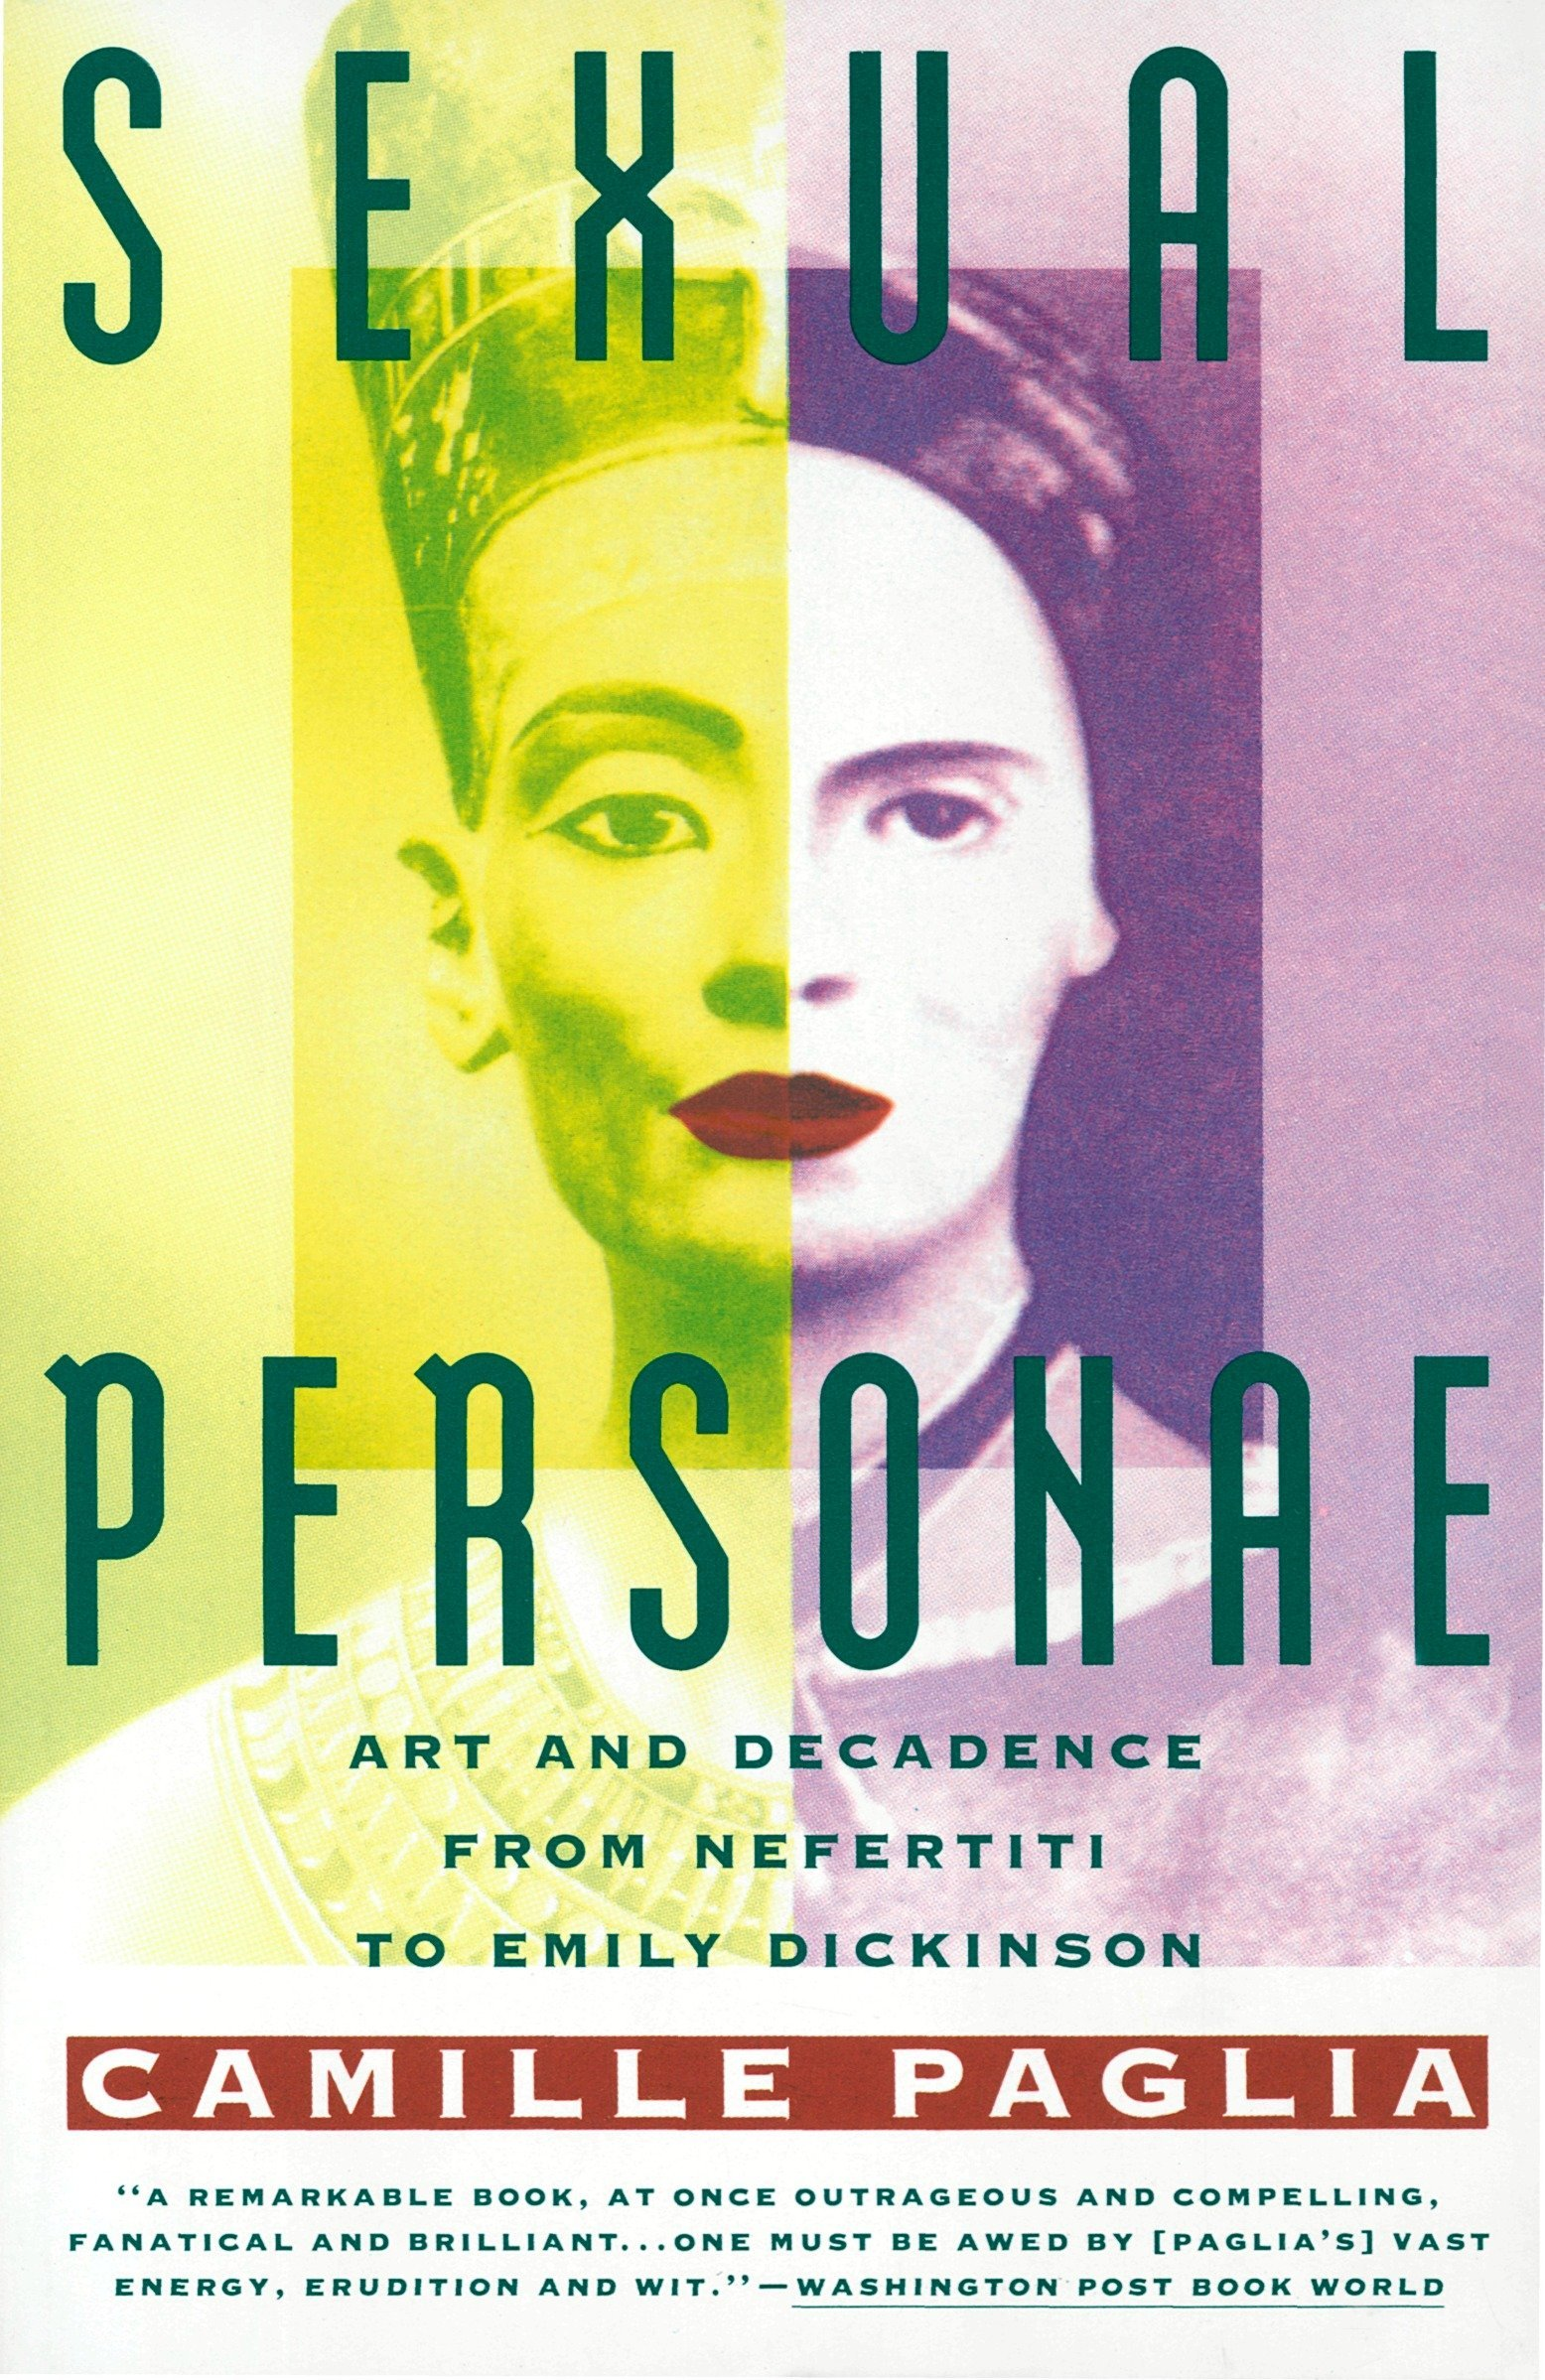 Sexual Personae: Art & Decadence from Nefertiti to Emily Dickinson: Art and Decadence from Nefertiti to Emily Dickinson